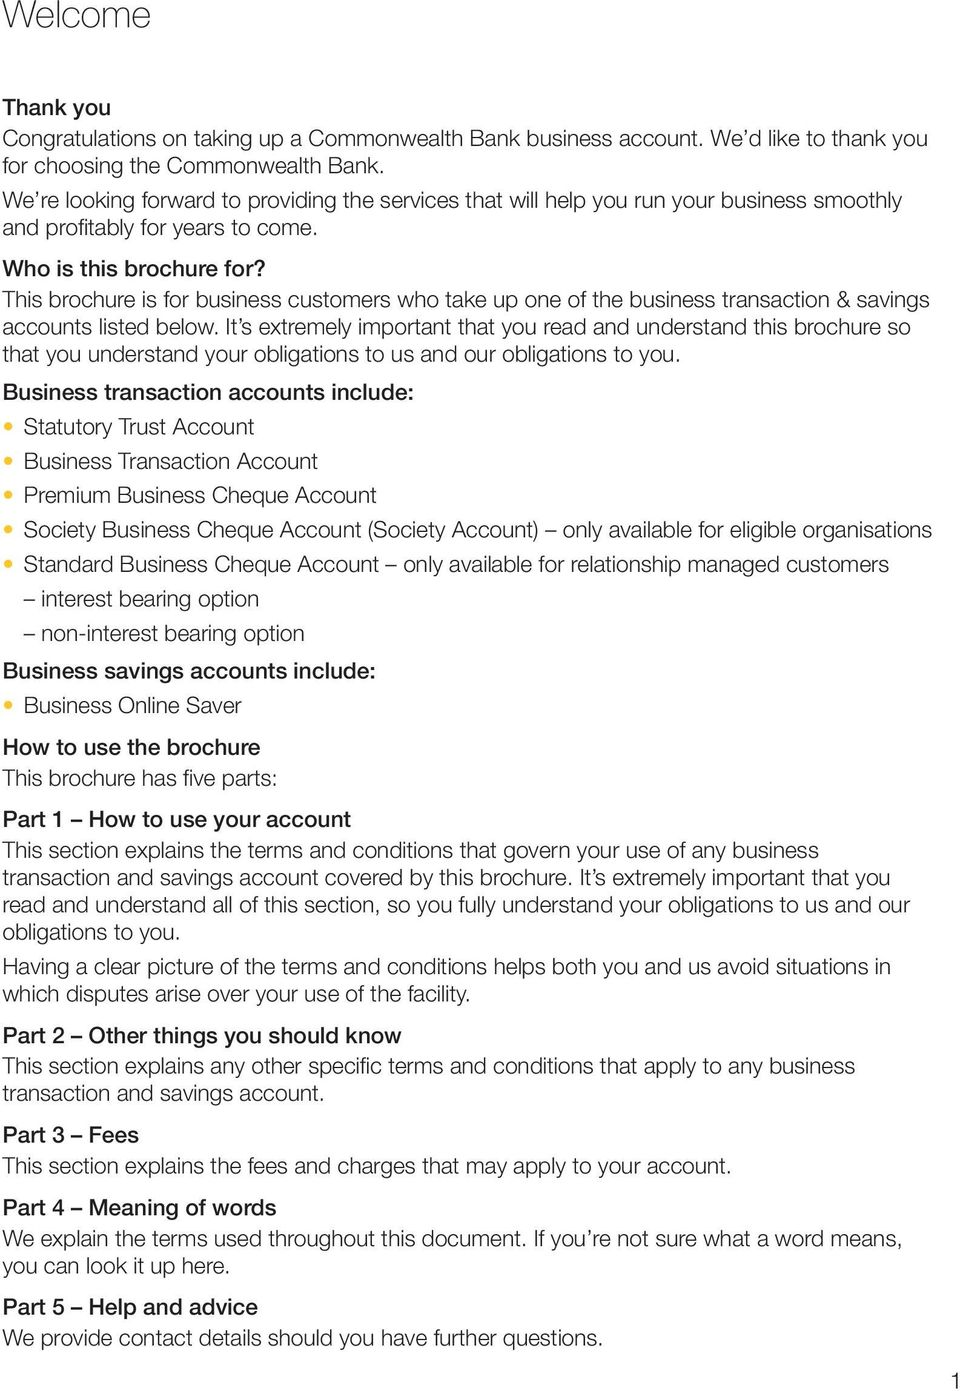 This brochure is for business customers who take up one of the business transaction & savings accounts listed below.